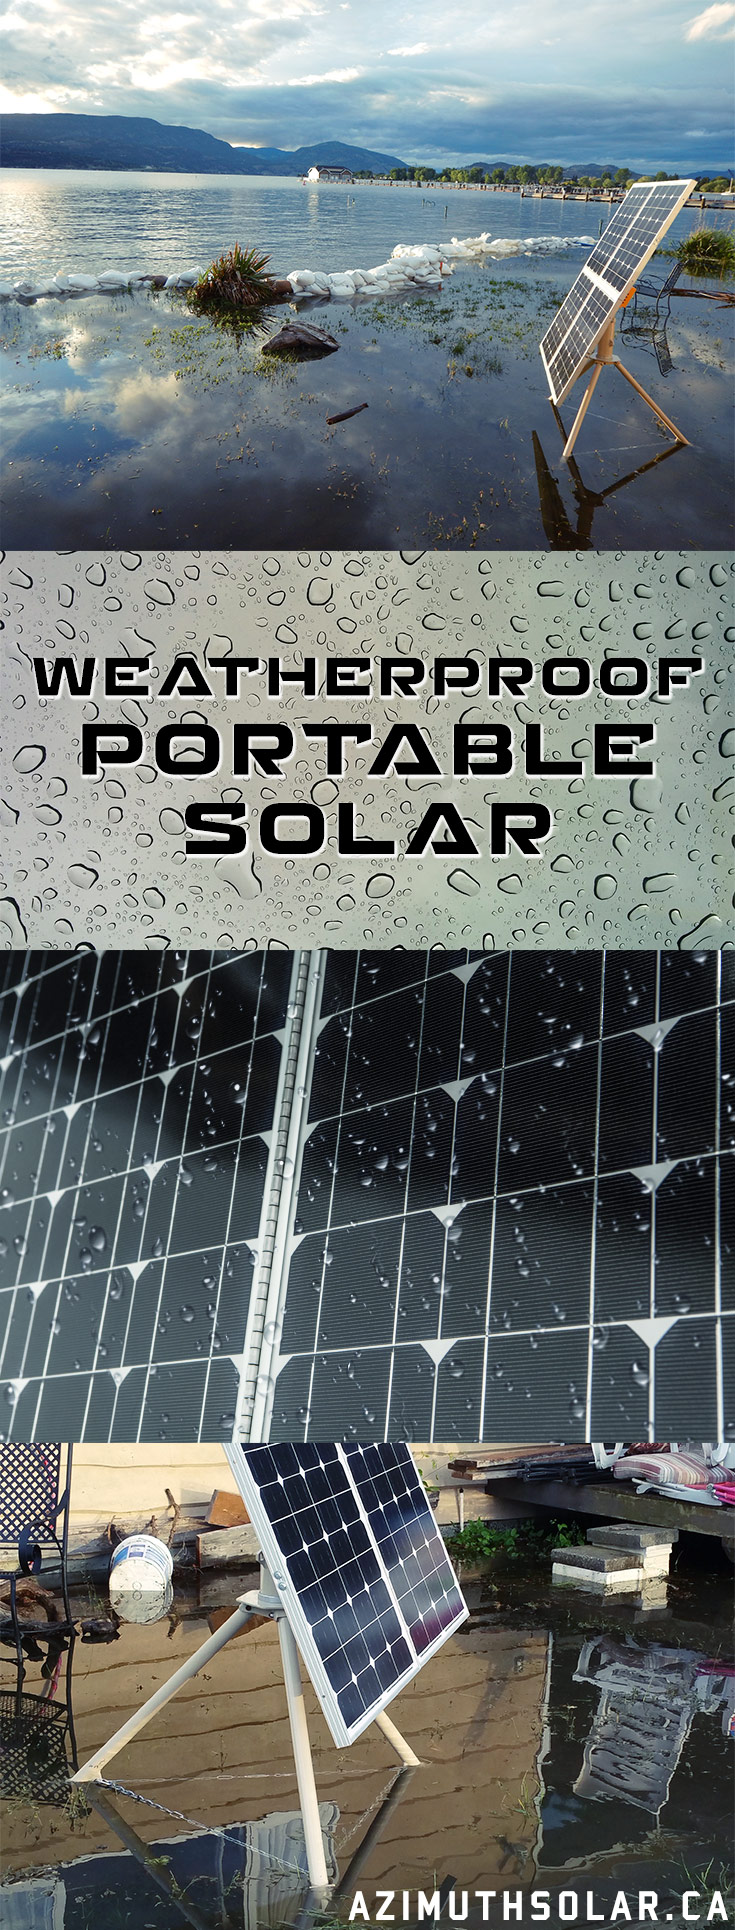 We're Weatherproofing Portable Solar